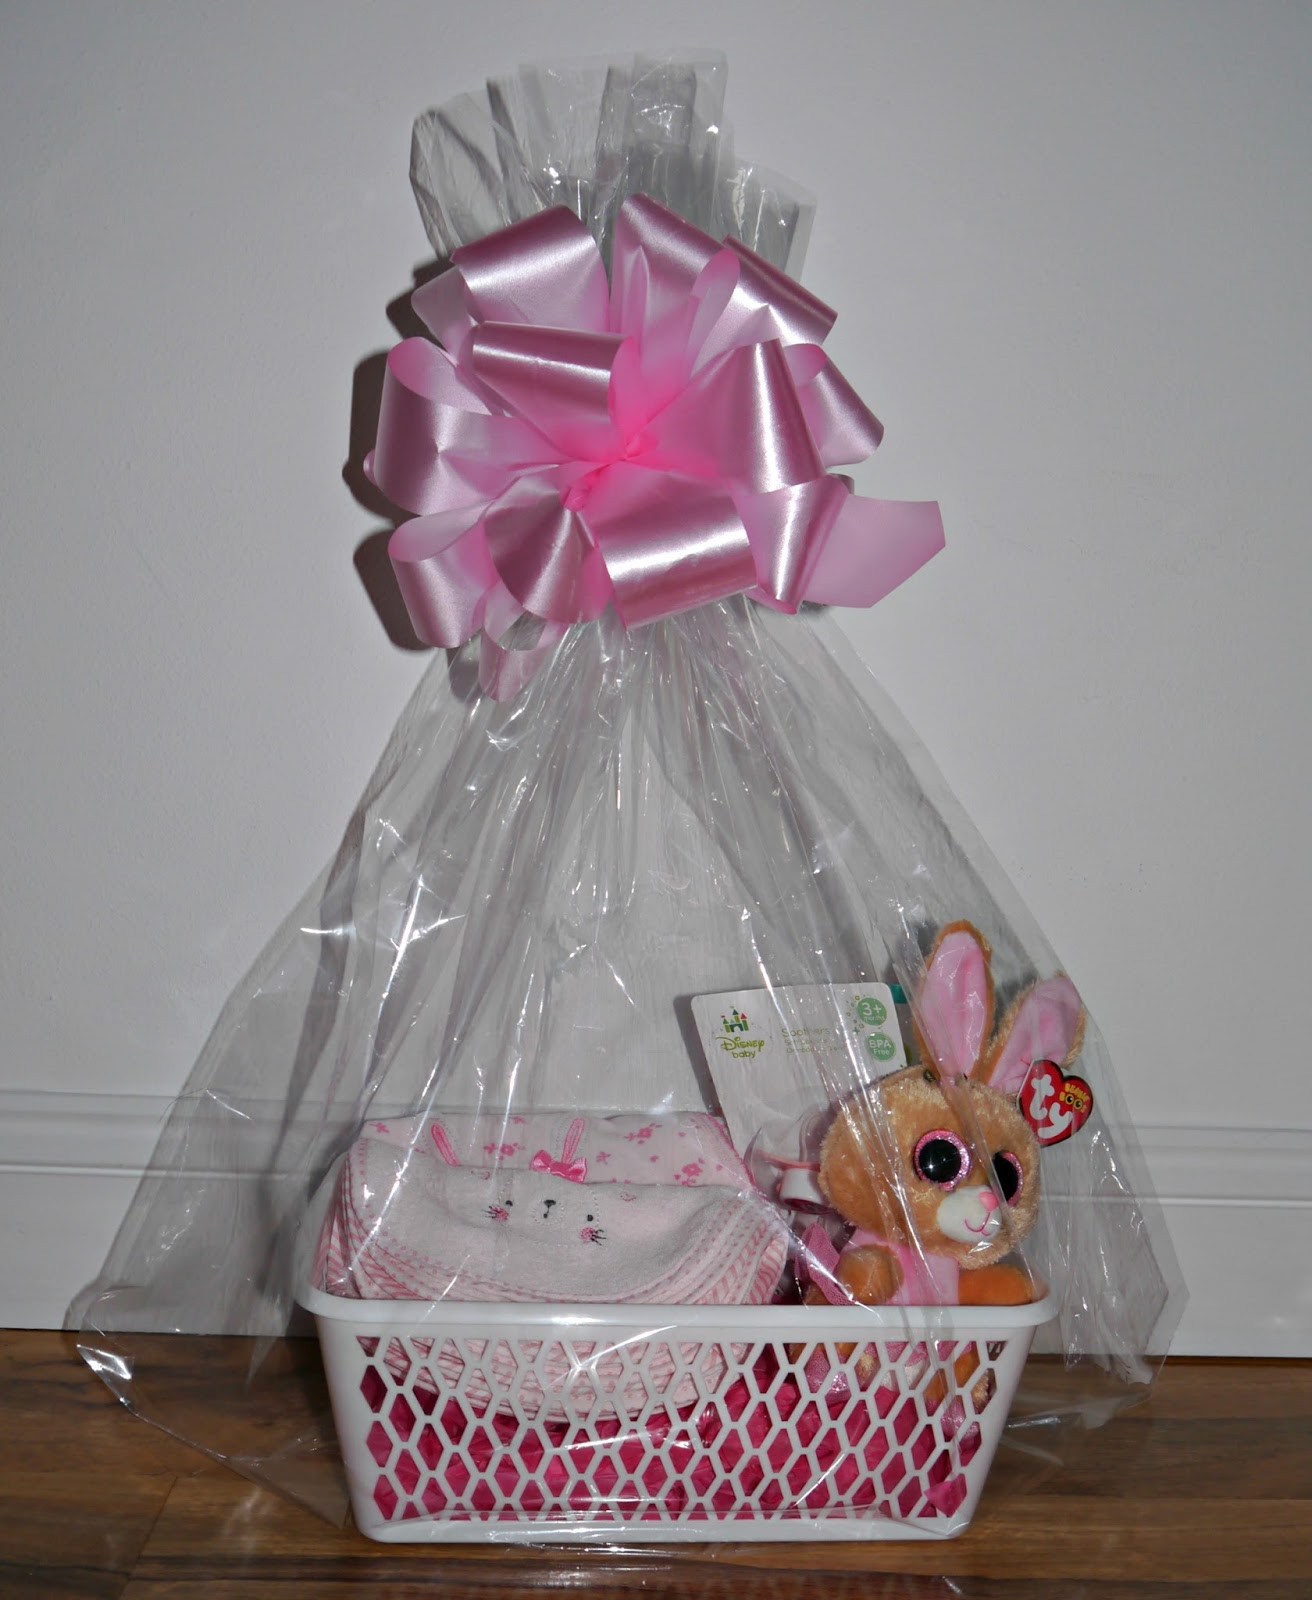 Last minute hamper ideas easter 2016 hannah marie earlier today i gave two types of easter basketshampers one being for a babys first easter and the others had a mix of things suitable for under 11 years negle